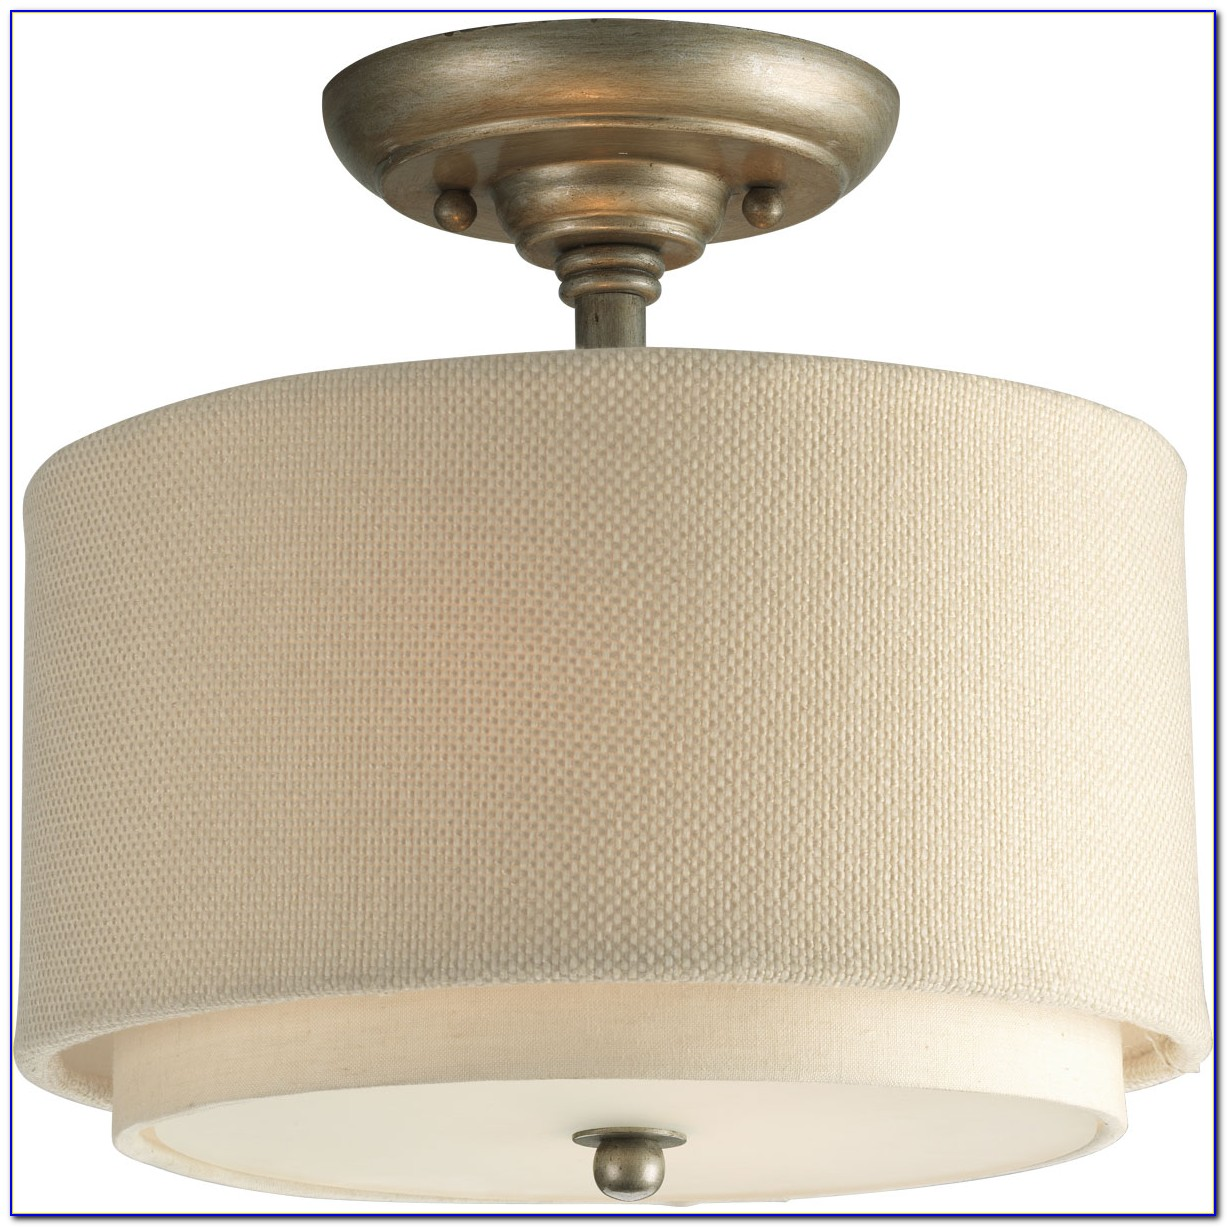 Ceiling Fan With Lamp Malaysia